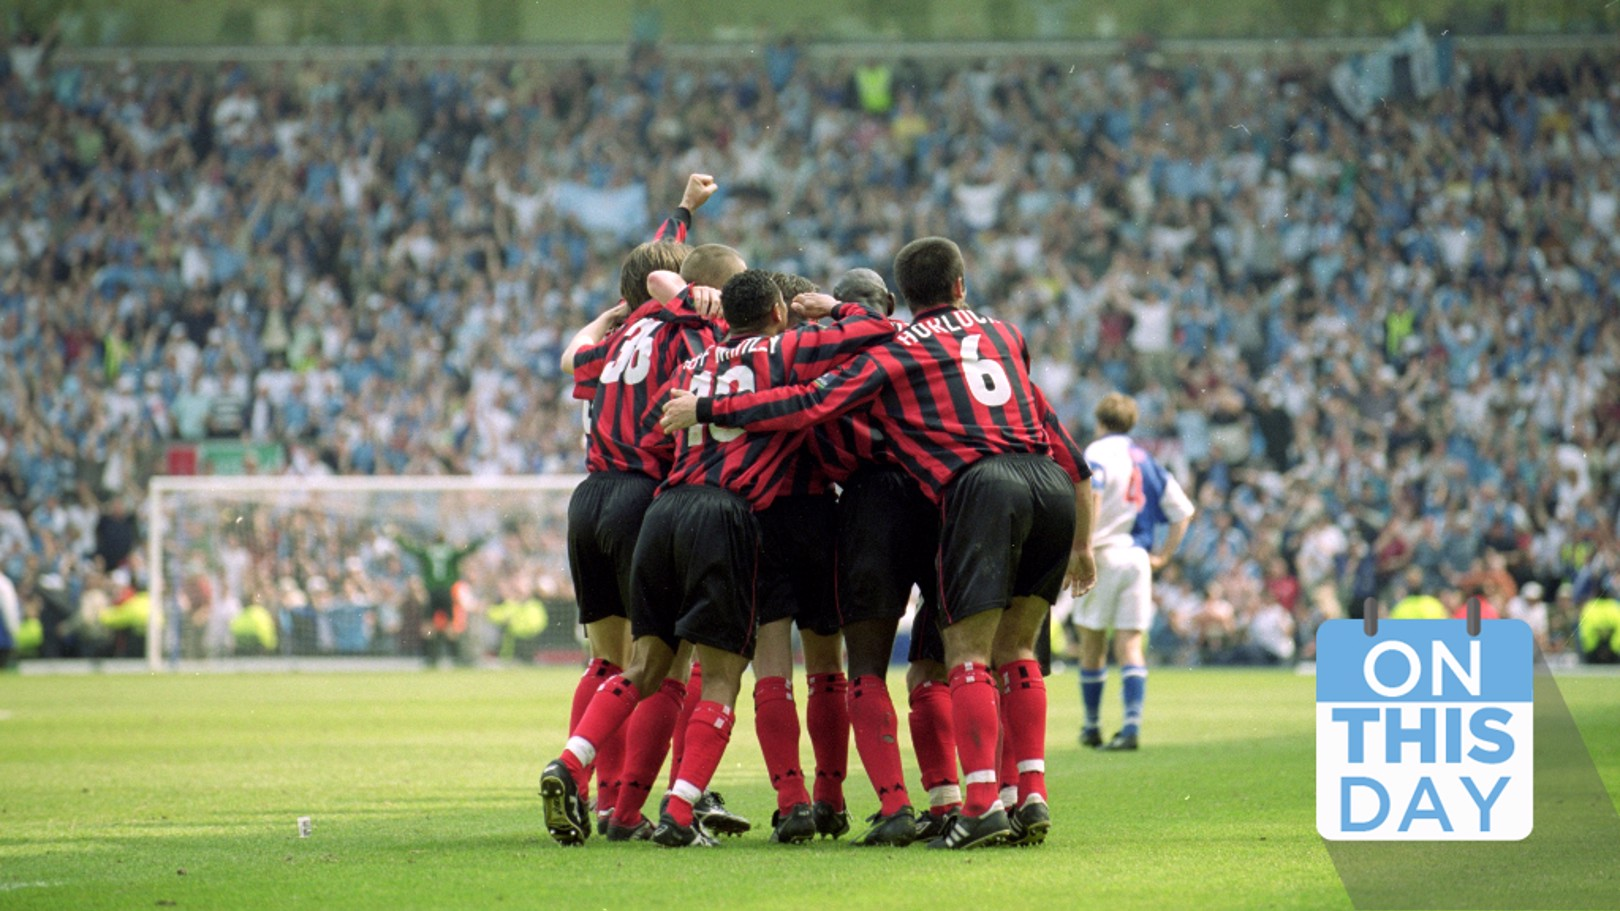 On this day: Promotion at Ewood Park!